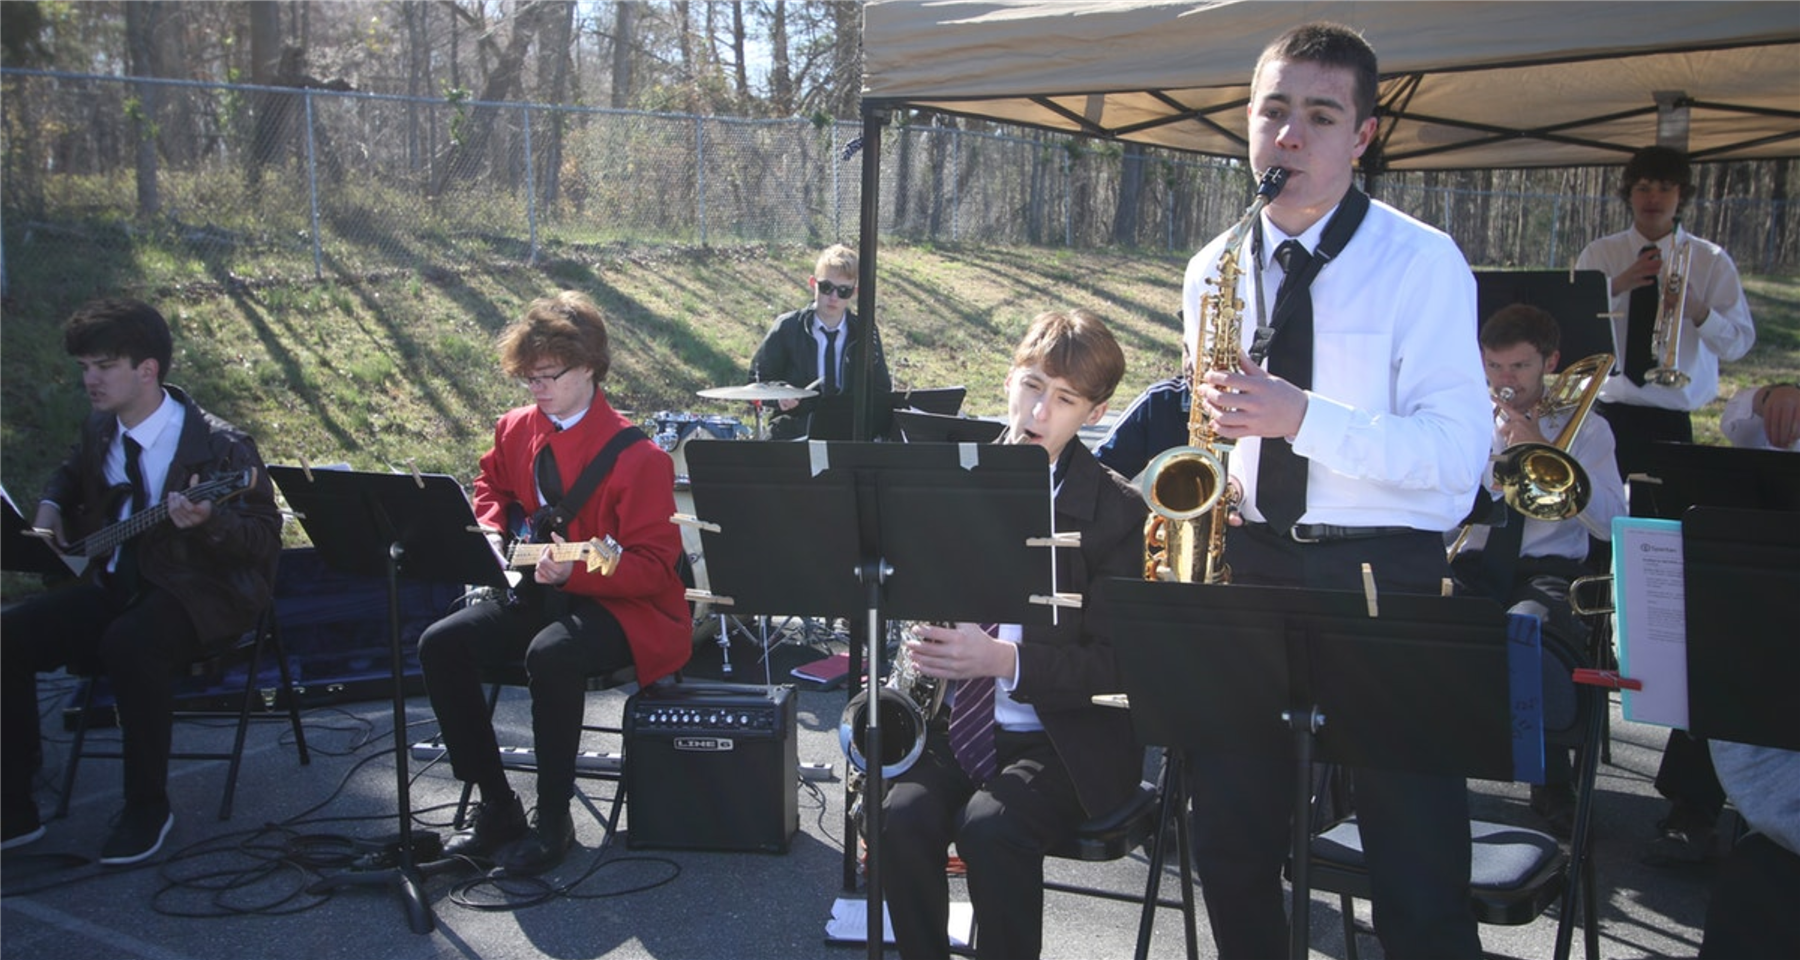 The Jordan Matthews High School Jazz Band performs at Siler City Elementary School on March 27, 2019.